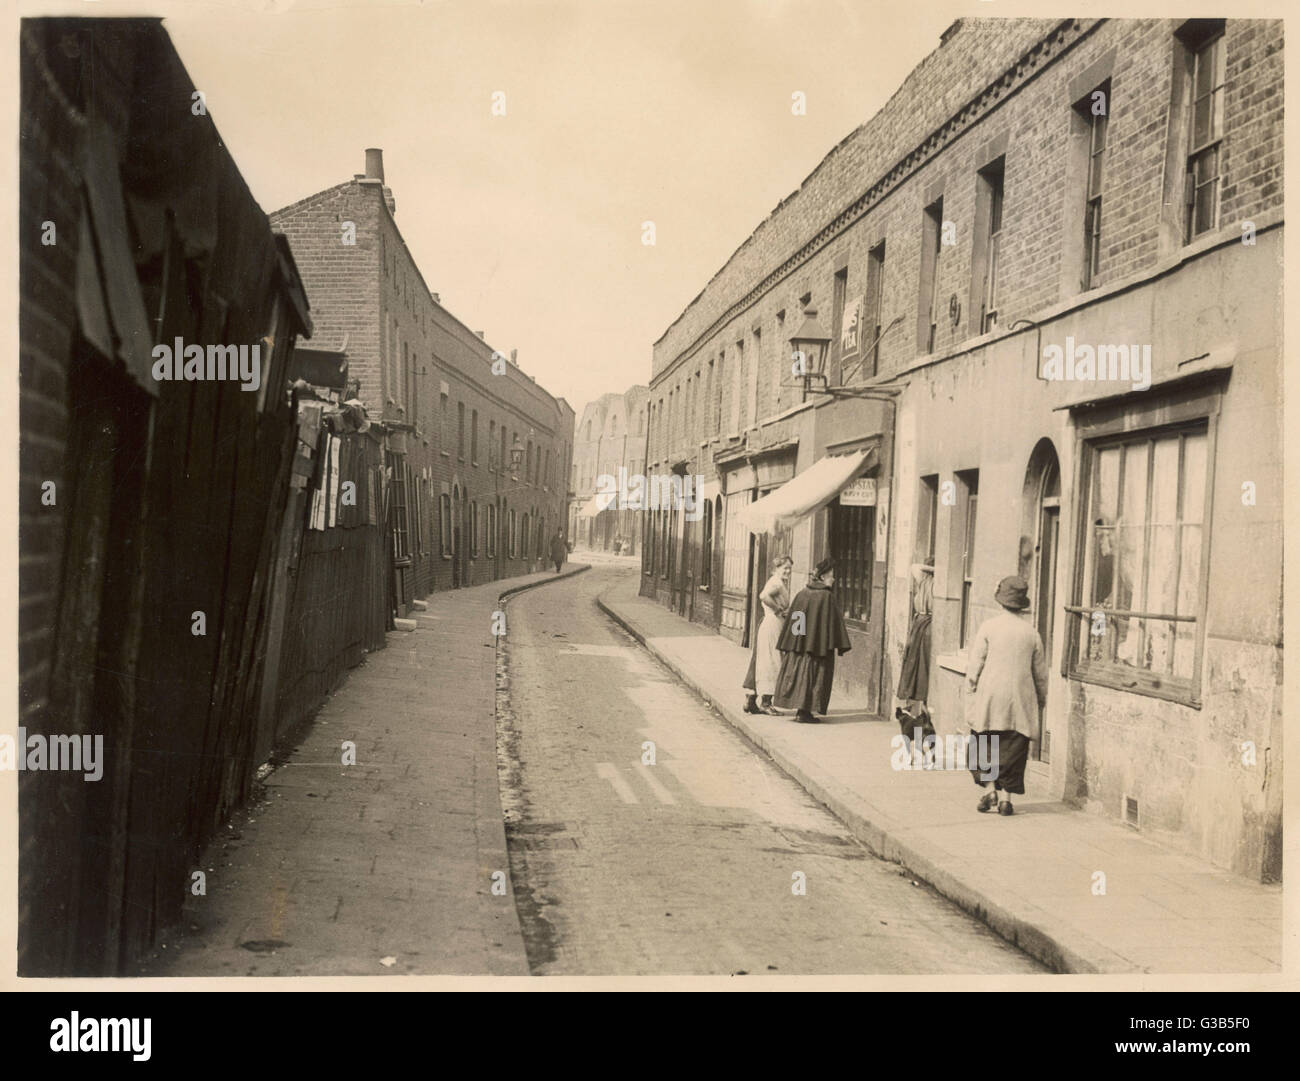 Limehouse Causeway         Date: early 20th century - Stock Image